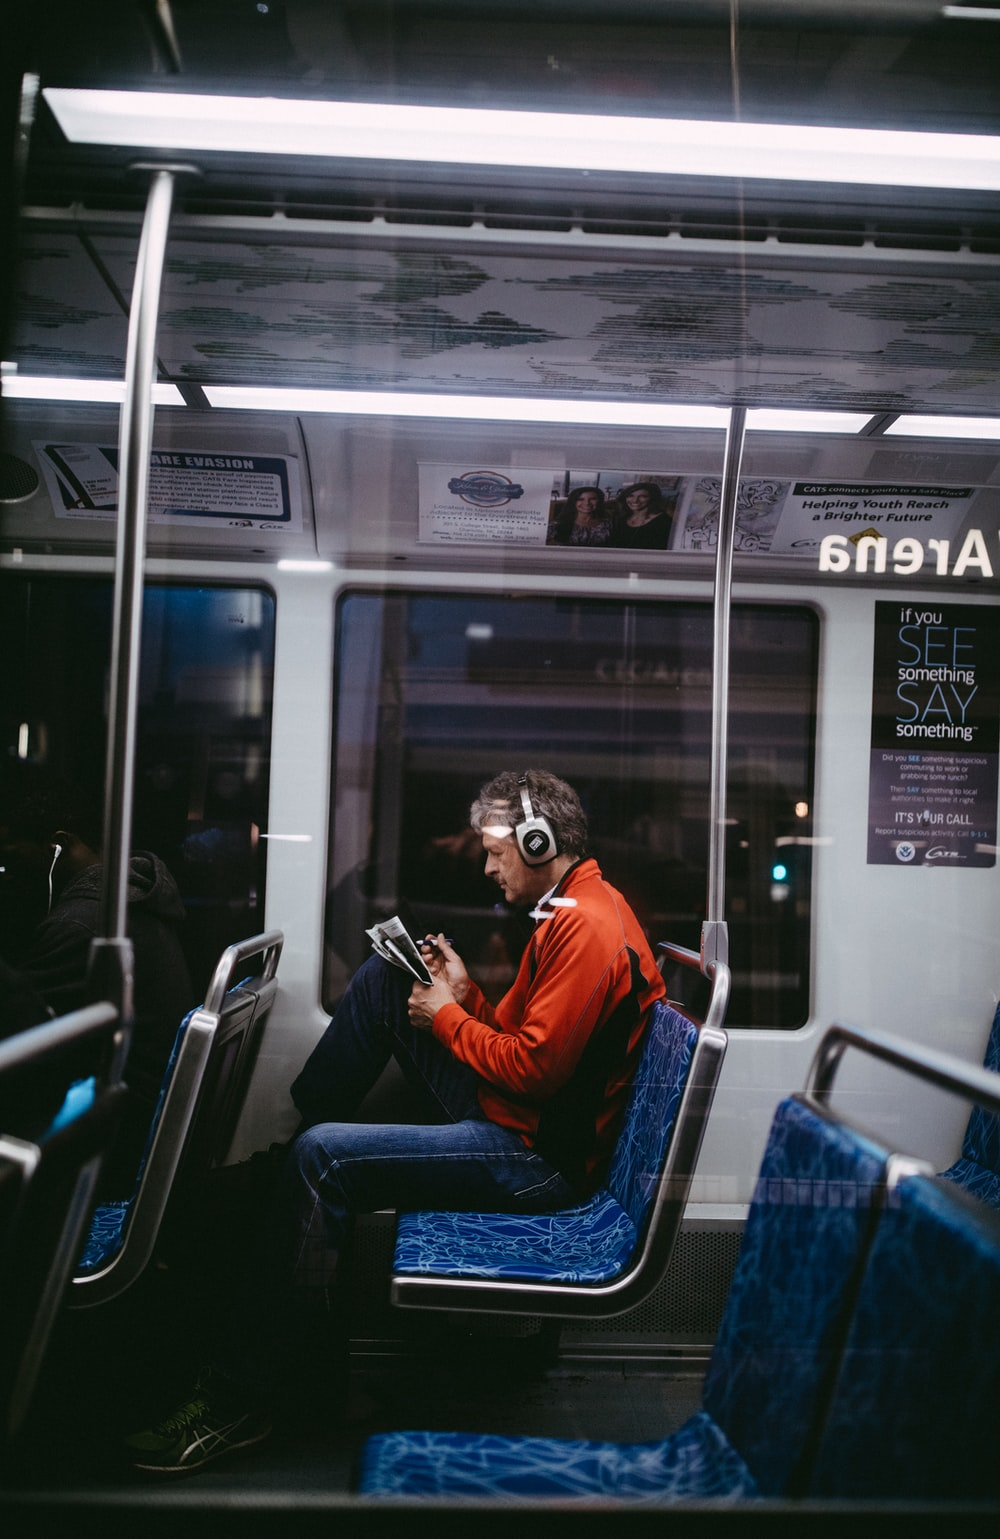 man sitting inside train while reading